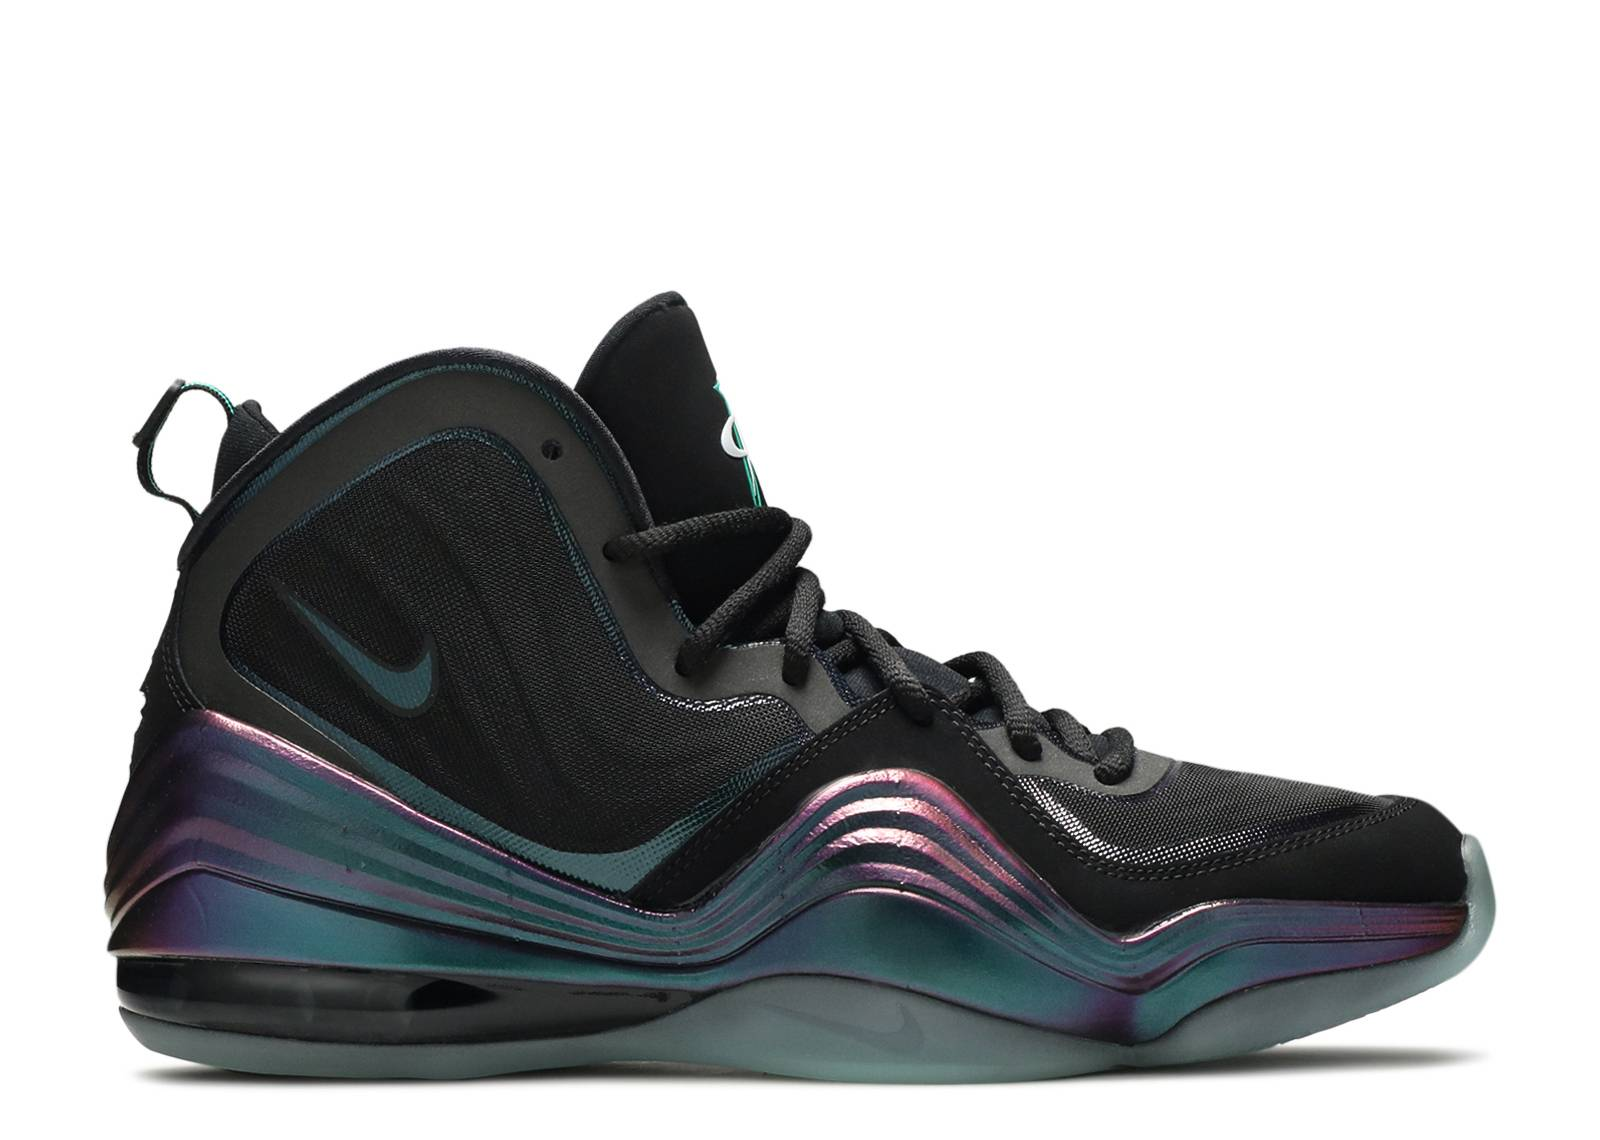 air penny 5 invisibility cloak nike 537331 002 black atomic teal purple flight club